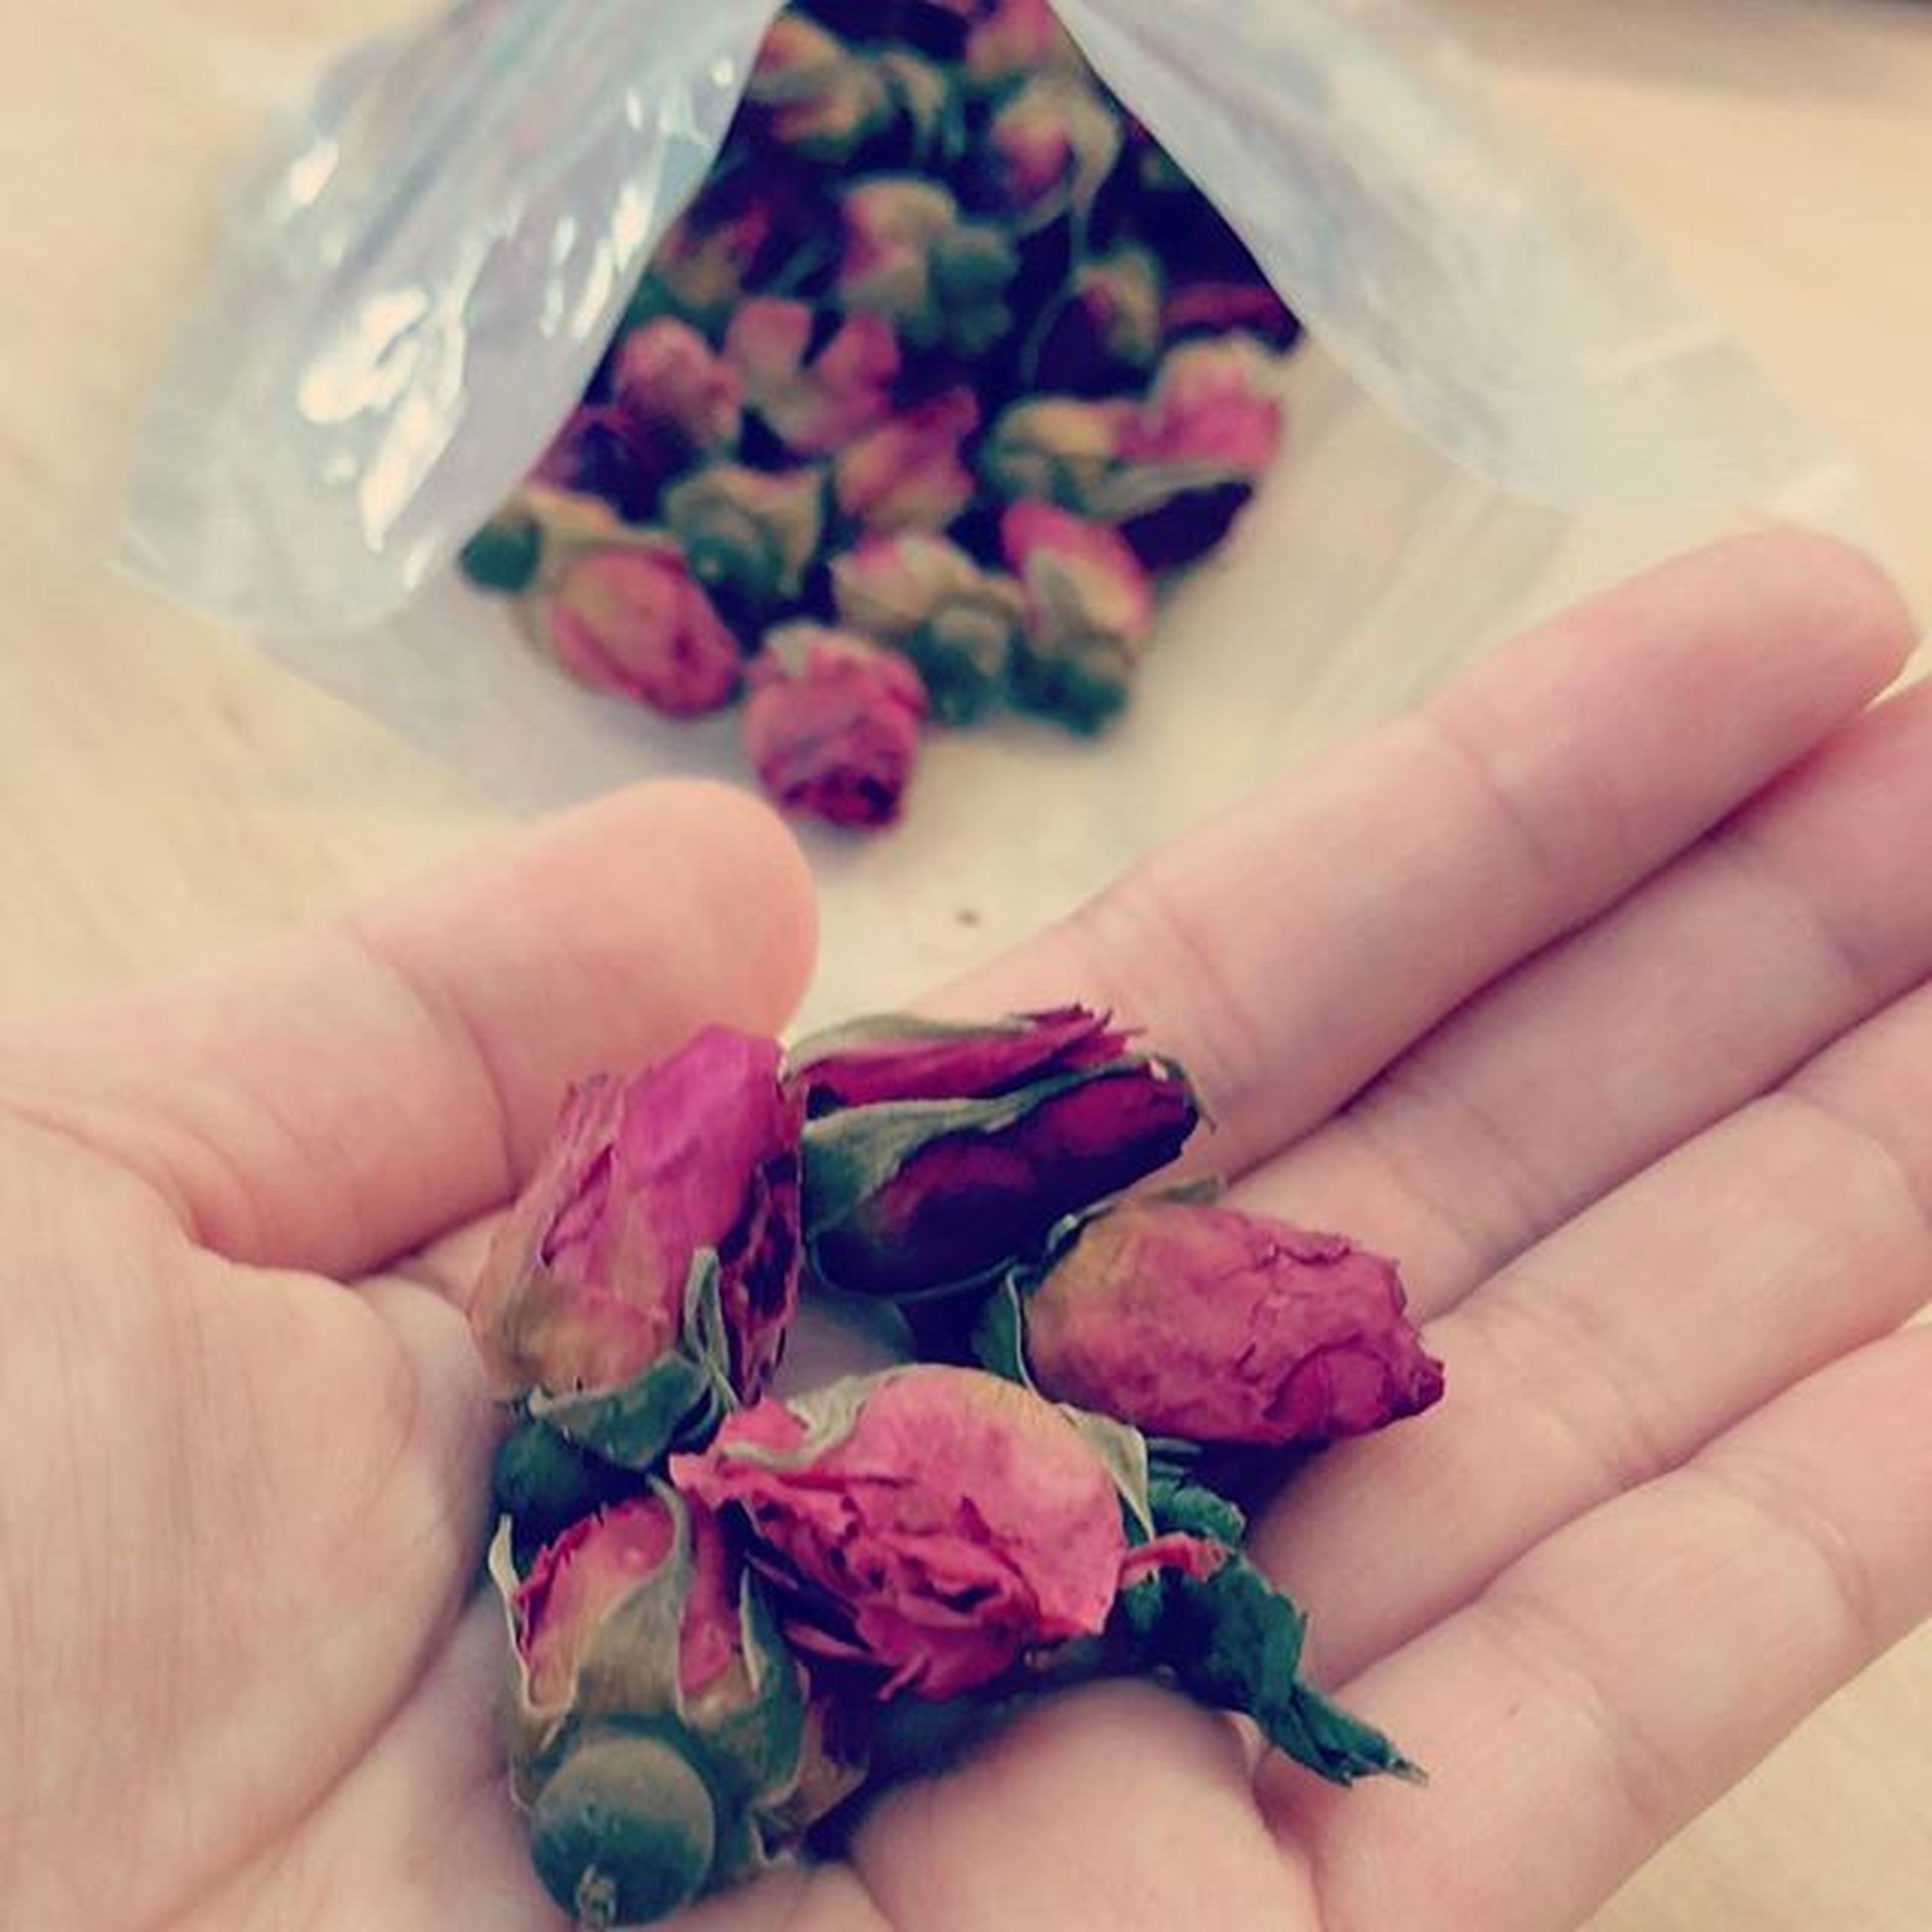 Do u vaguely remember the rose buds tea from yesterday's post? Let's talk about it a lil bit more. Rose buds tea is made from whole, young, dehydrated rose buds. These delicate pink flowers make a fragrant brew with natural smell and taste of roses, fruity and light tasting. Was researching on the benefits, Ladies listen up, it helps to relieve menstrual cramps, radiant complexion, natural antioxidant and the list goes on and on. 😍 Tips: you can create a DIY toner from these rose buds too!! Pertheats Rosebudstea Rosebuds Perthfoodblog perthfood perthfoodadventure perthisok perthpop happyperth thefoodie tea thefoodiehub instafoodie igfoods perthgrub perthgram perthfoodie perthfoodreview foodie foodpics foodphotography foodporn